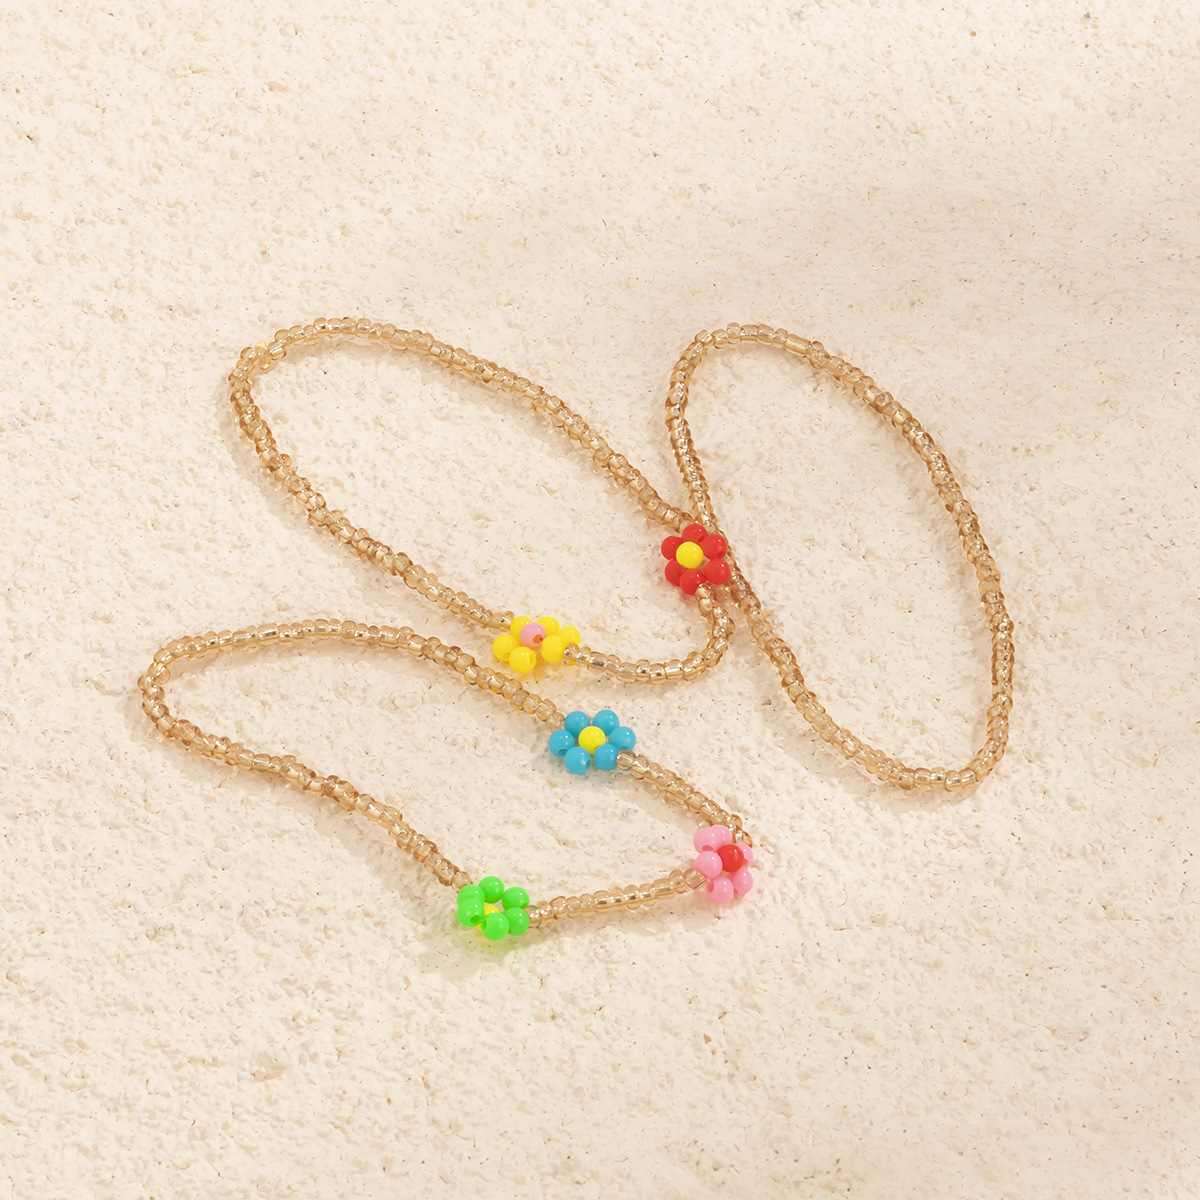 2021 Summer New Style Colorful Rainbow Glass Rice Bead Adjustable Flower Seed Beads Necklace for Women and Girls